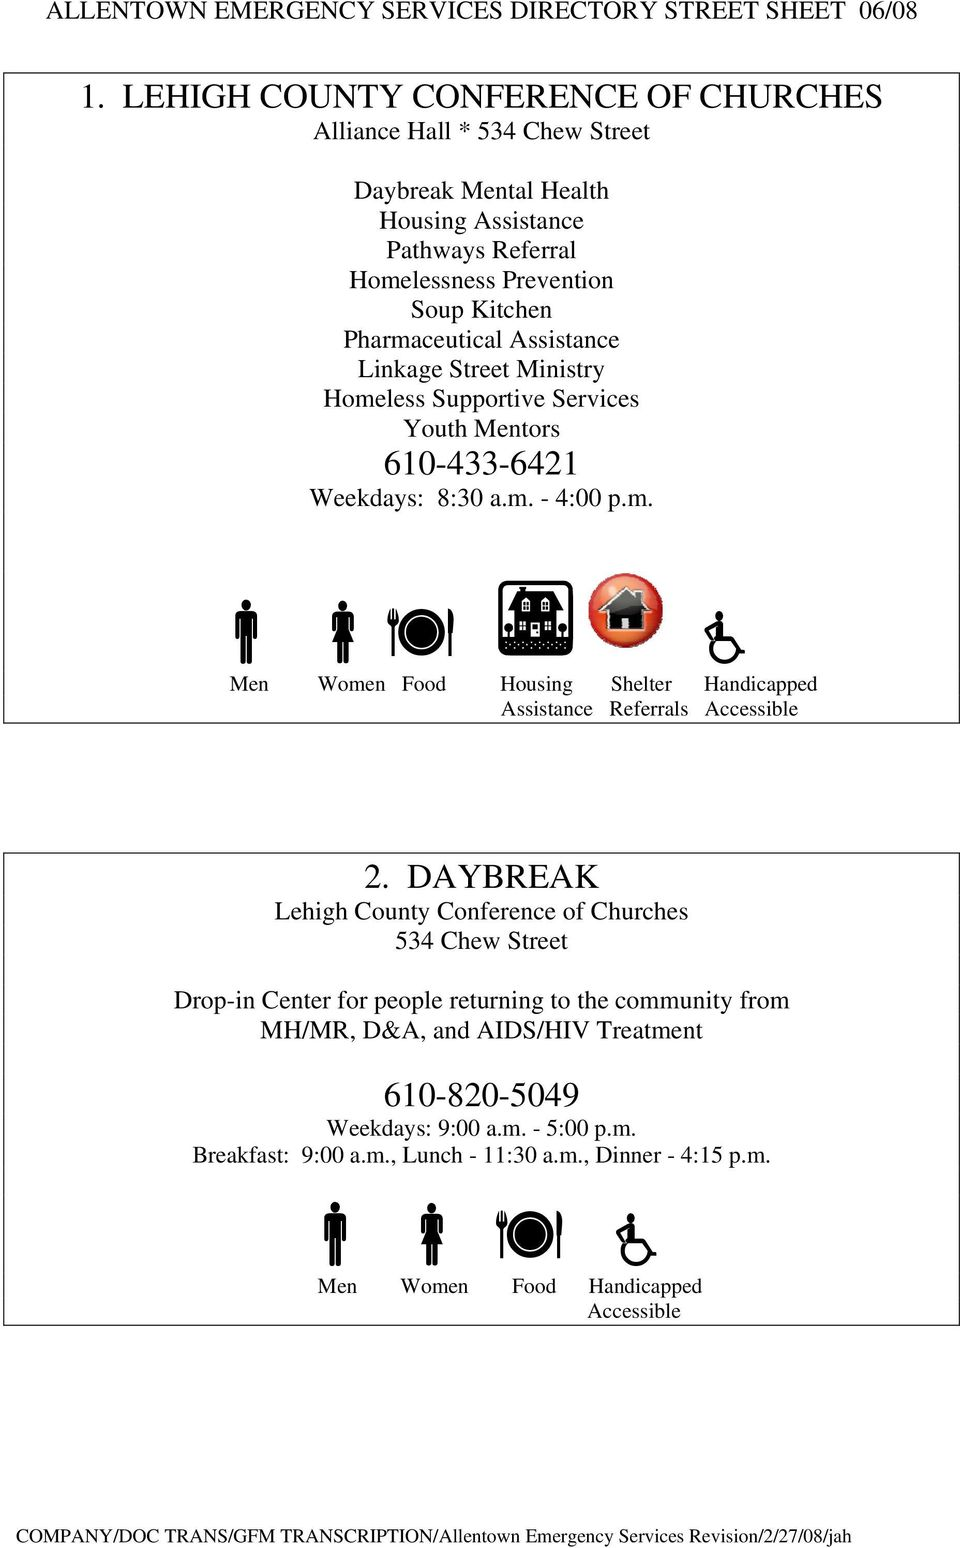 DAYBREAK 534 Chew Street Drop-in Center for people returning to the community from MH/MR, D&A, and AIDS/HIV Treatment 610-820-5049 Weekdays: 9:00 a.m. - 5:00 p.m. Breakfast: 9:00 a.